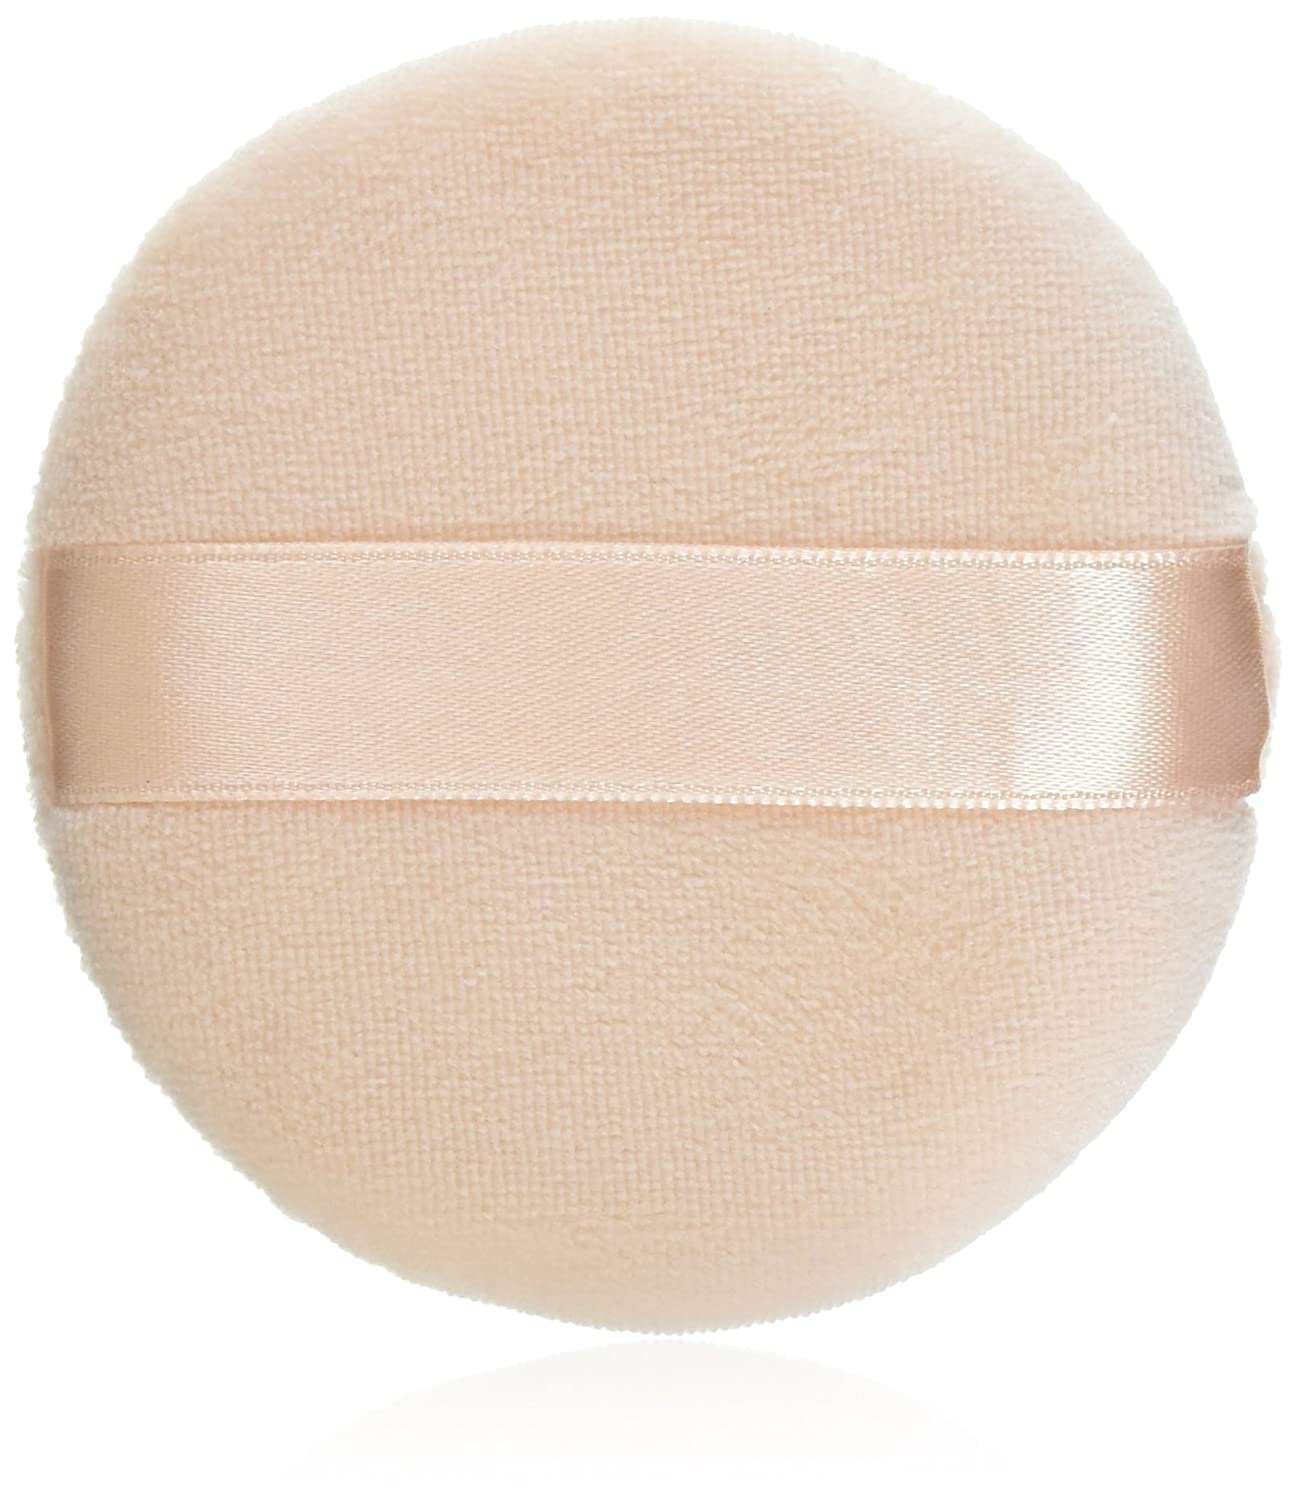 Mefeir 3pcs Large Round Body Face Facial Makeup Cosmetic Powder Puff Soft Sponge by Mefeir